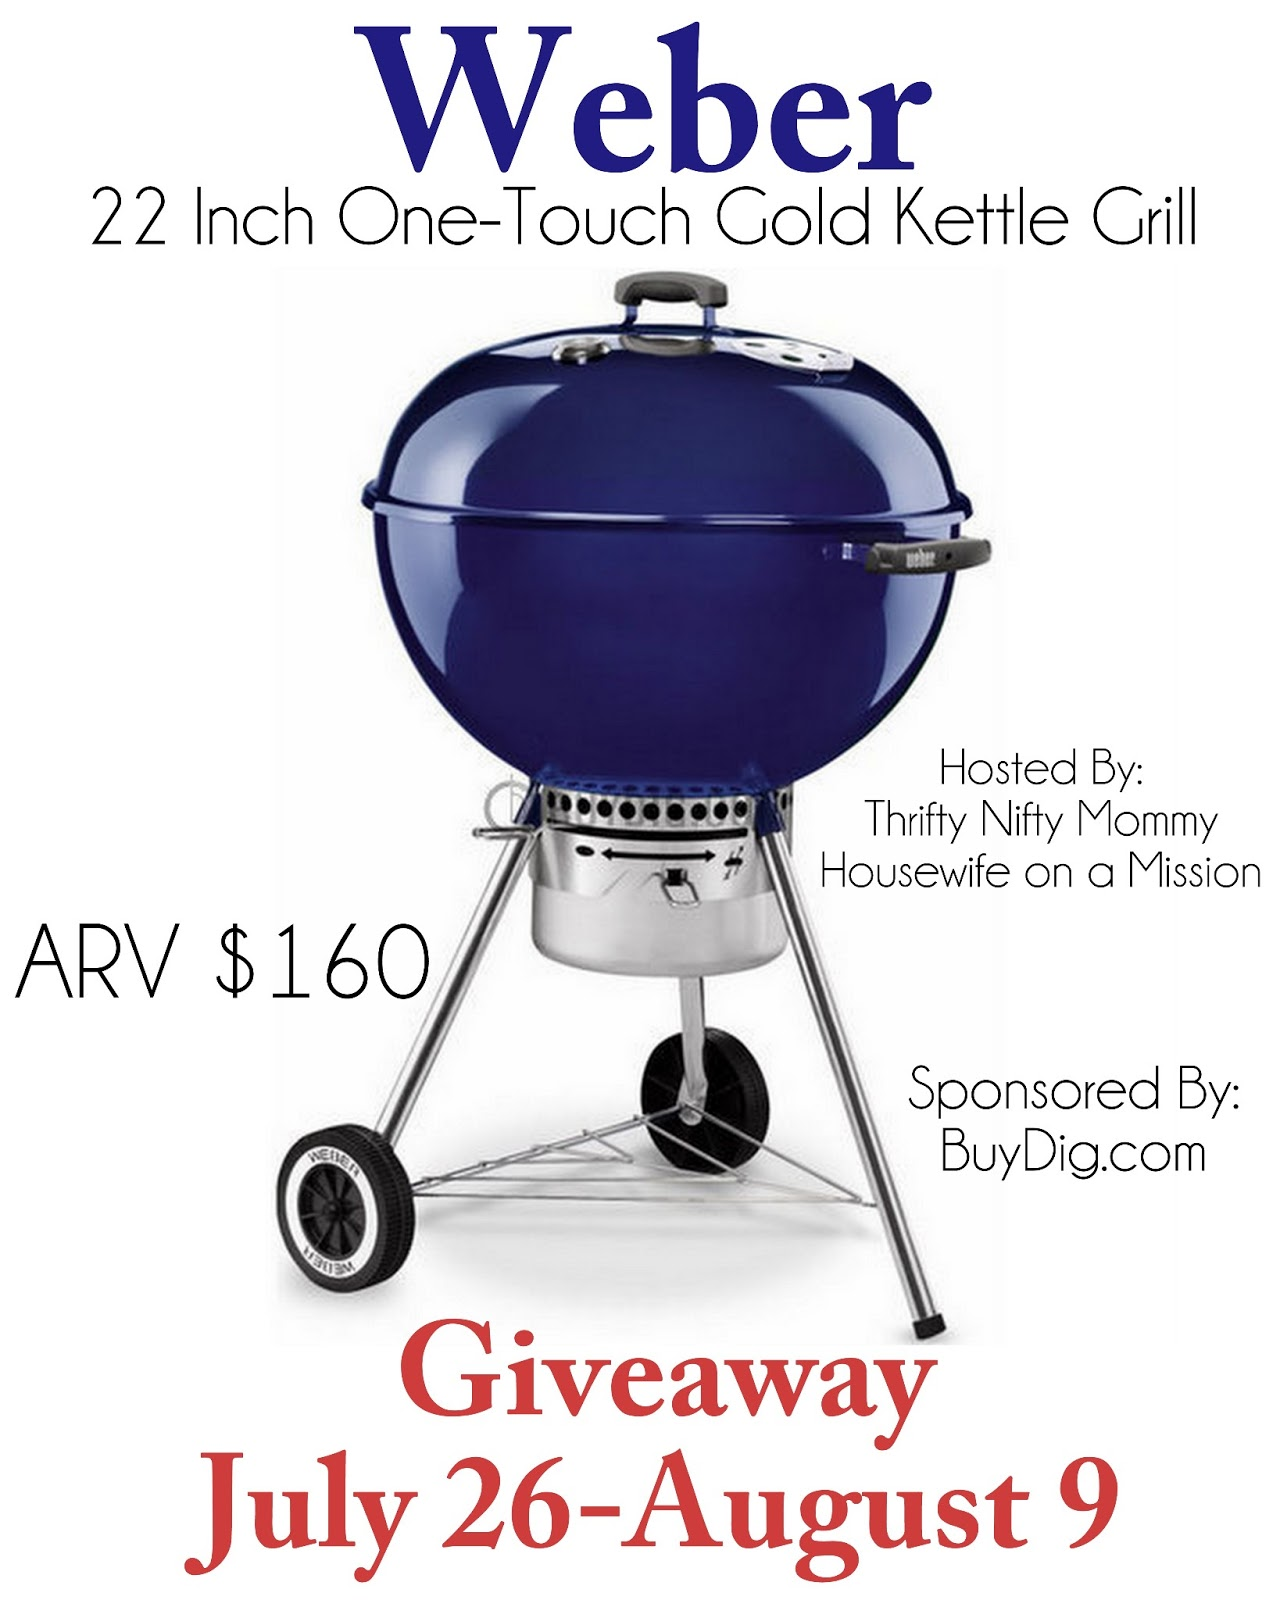 Weber Grill One Touch The Story Of Three Weber Grill Review And Giveaway